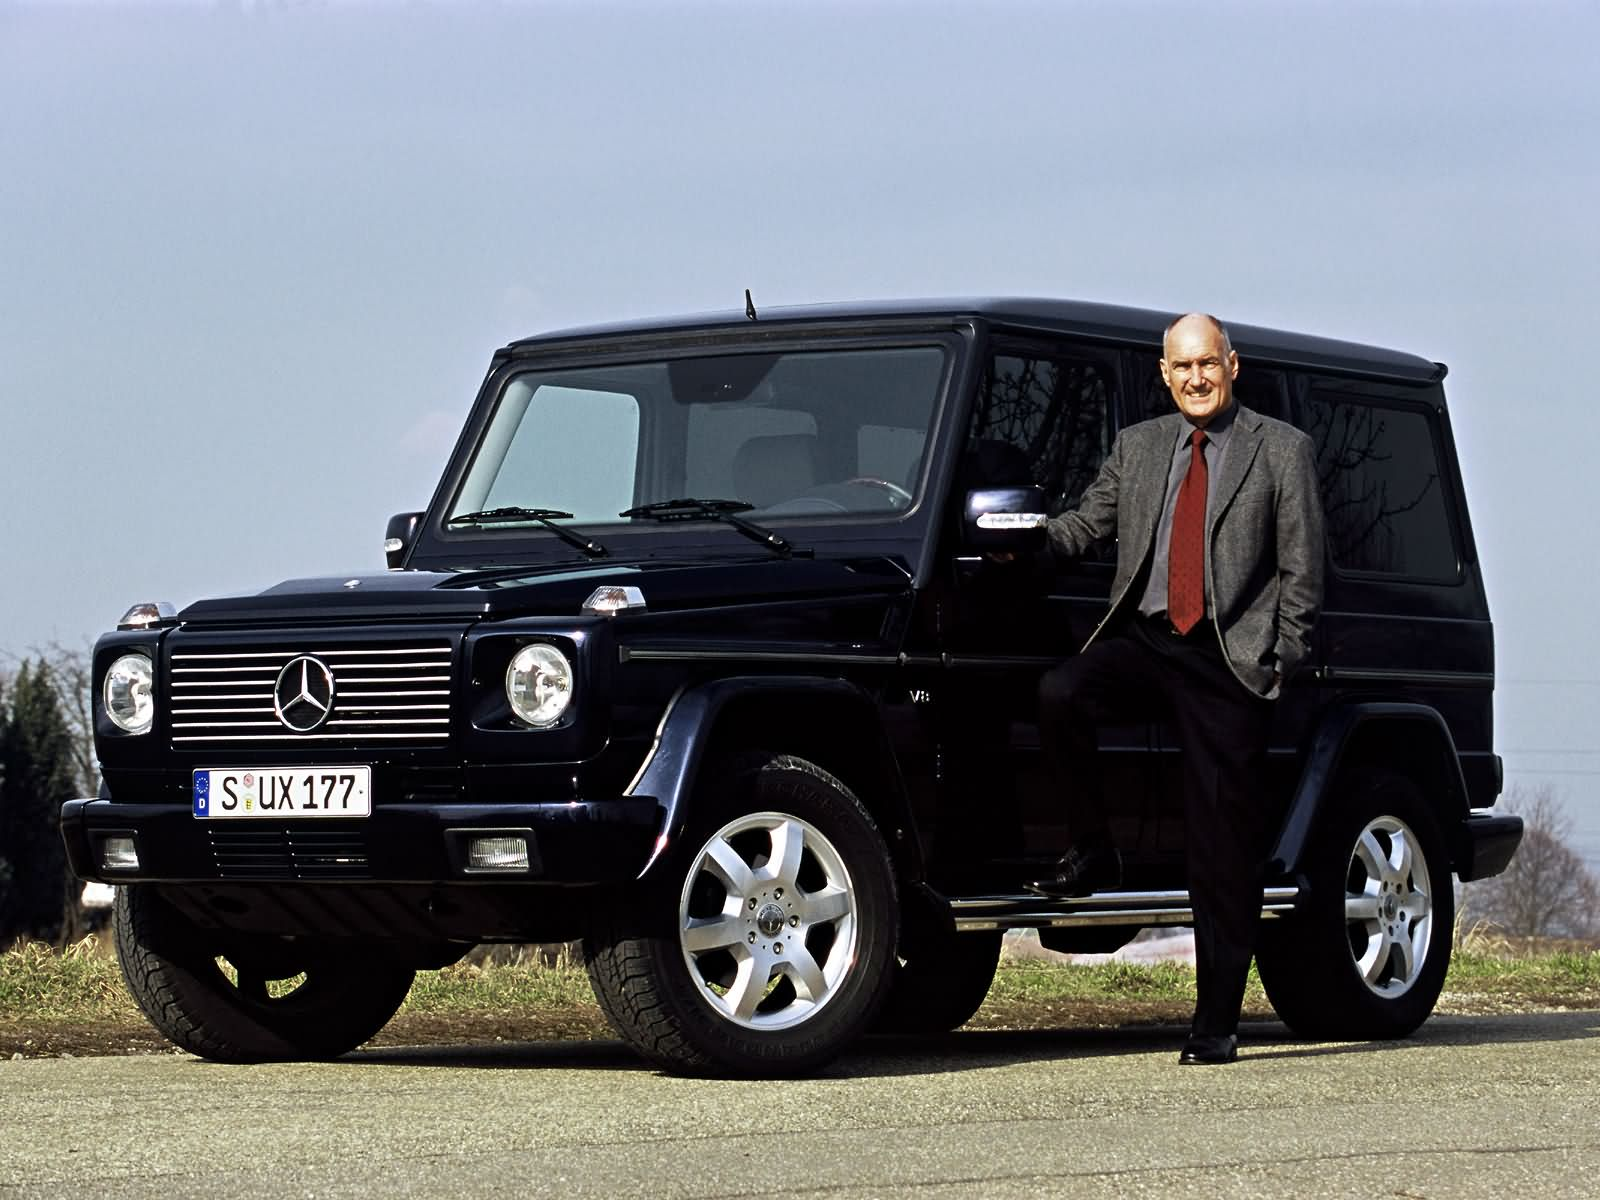 mercedes benz g class amg picture 9827 mercedes benz. Black Bedroom Furniture Sets. Home Design Ideas